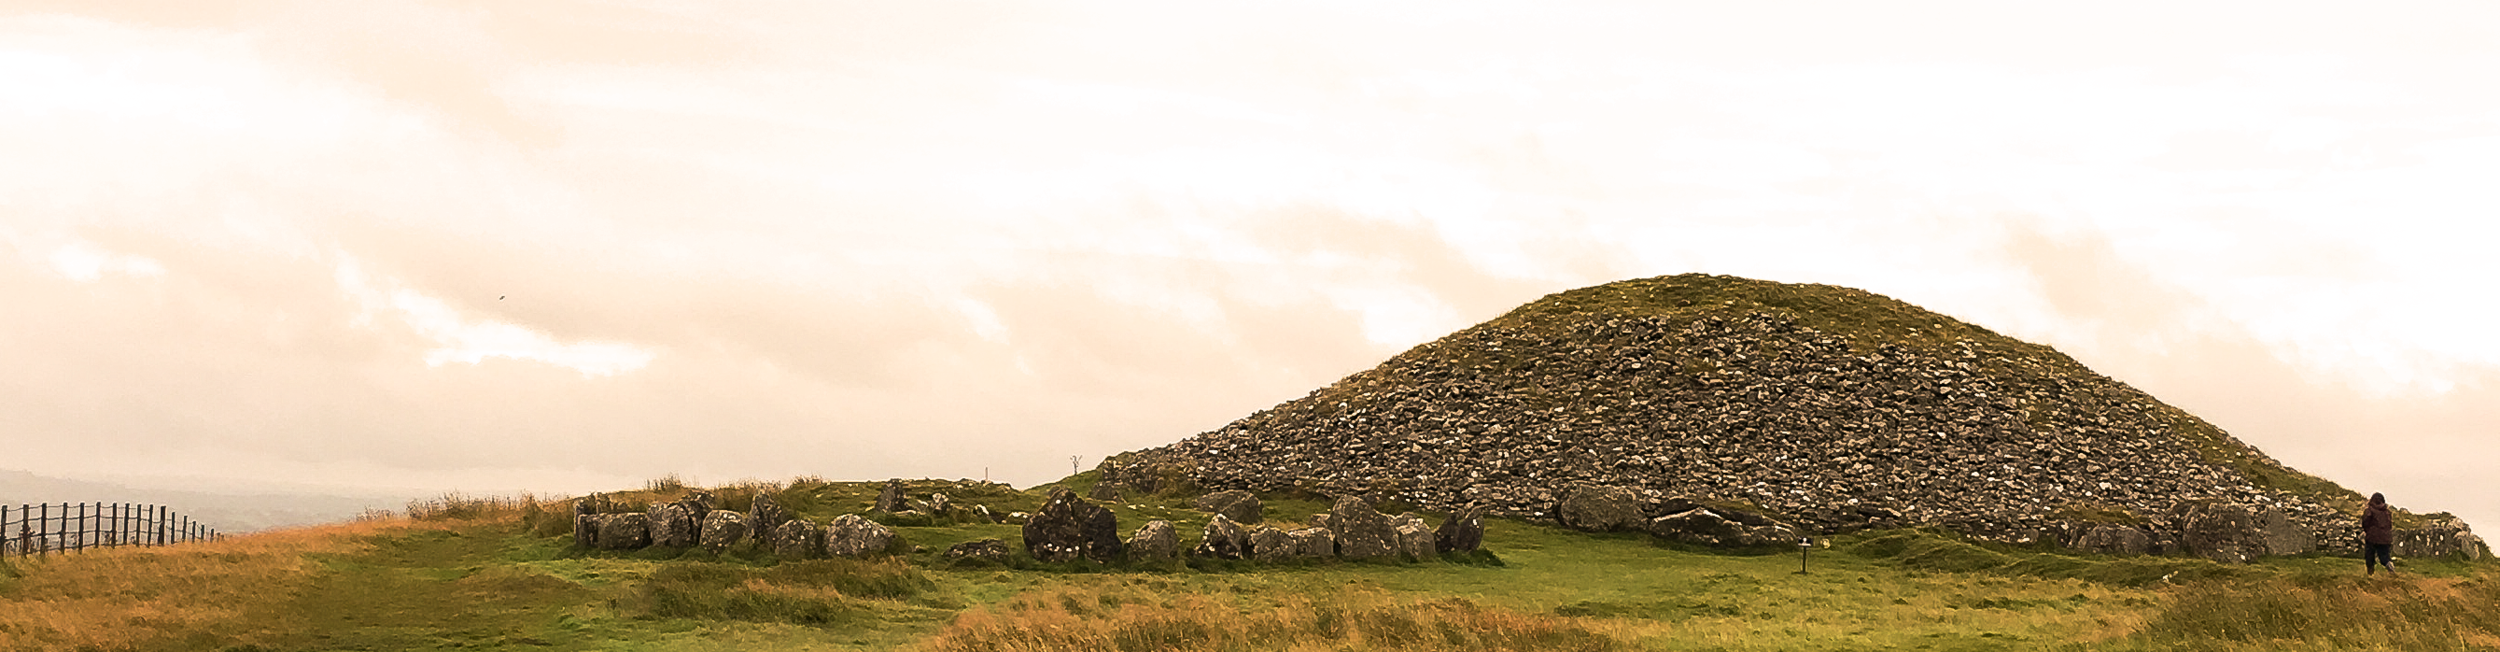 The Cailleach's Cairn T at loughcrew